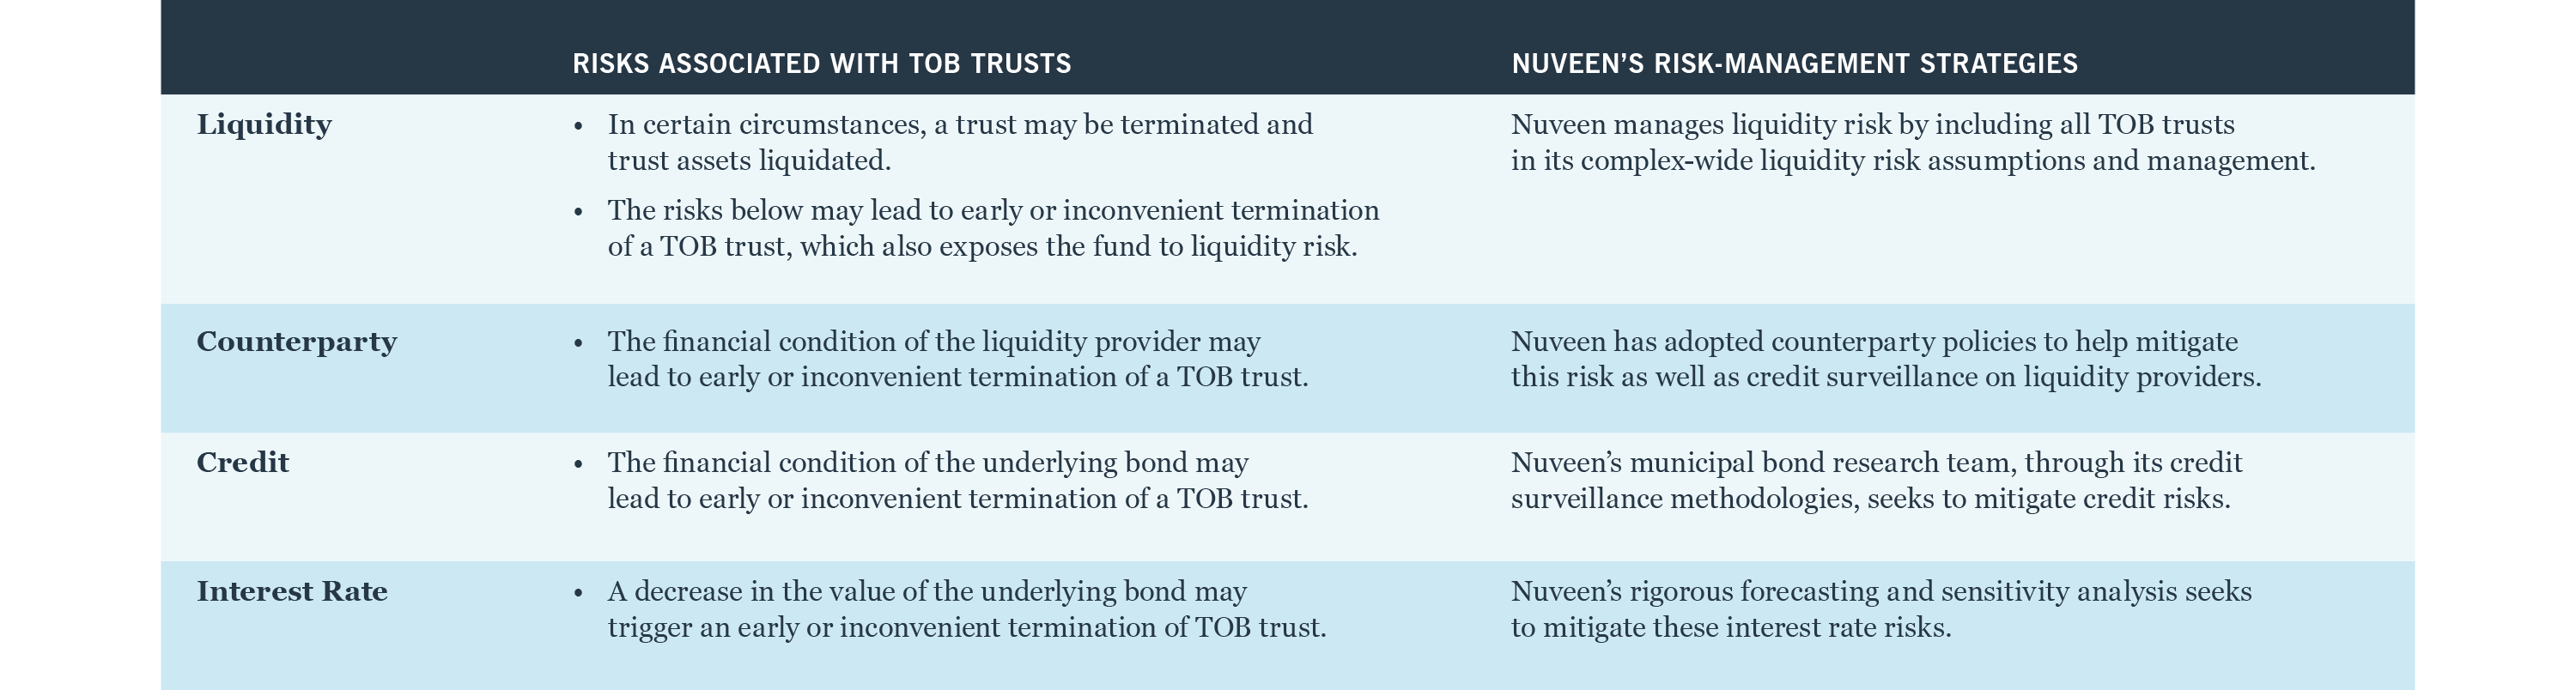 Risks associated with TOB trusts